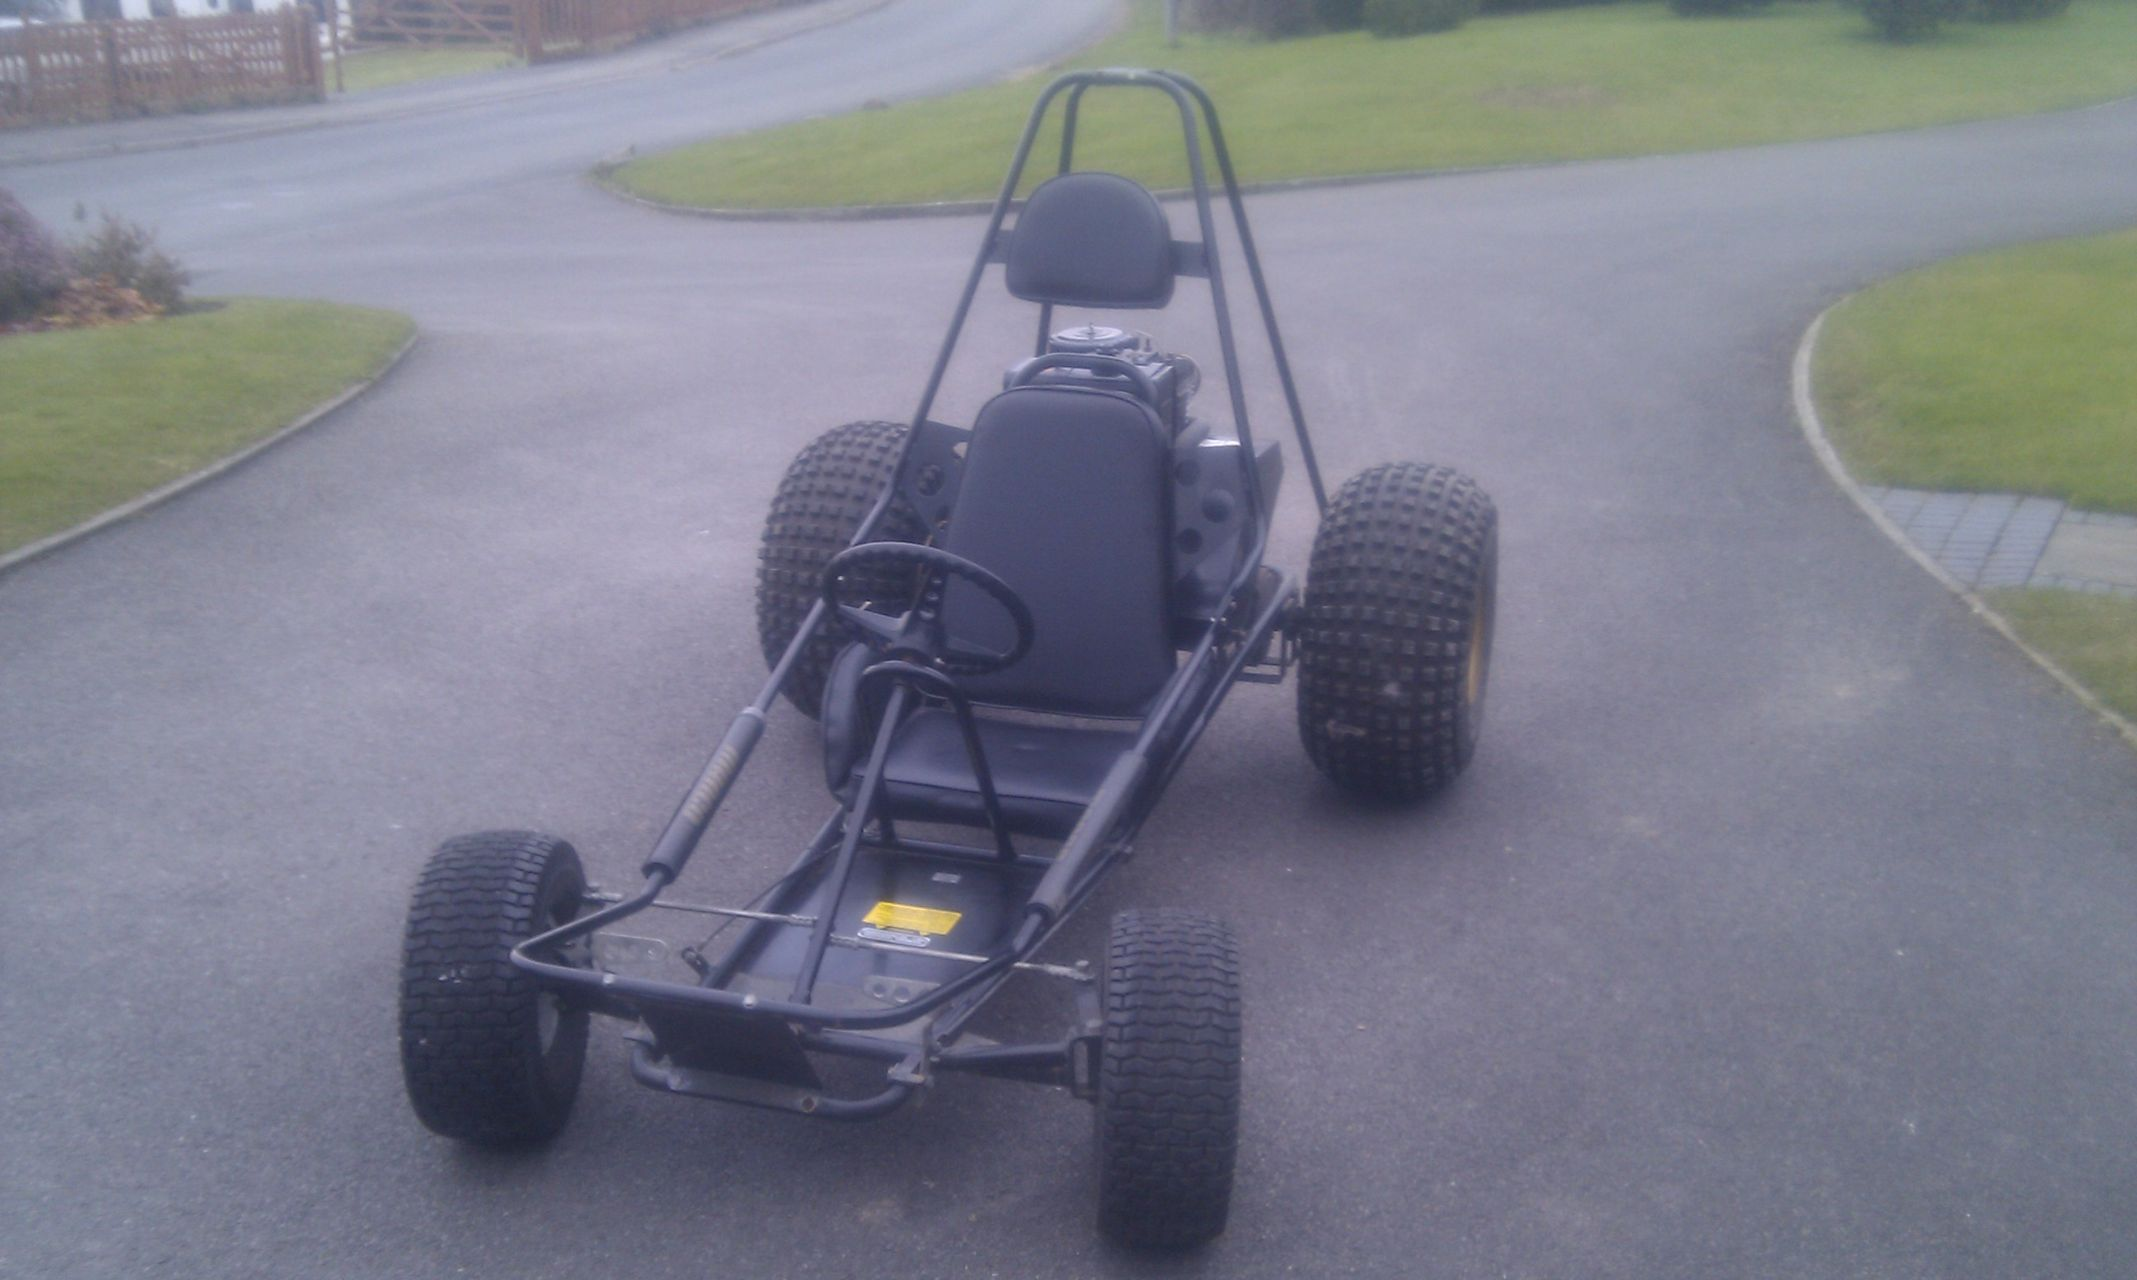 go karts dune buggy go kart high end go kart, thecompany was founded  in  go kart teseh engine diagram also simple go kart diagrams tecumseh 6